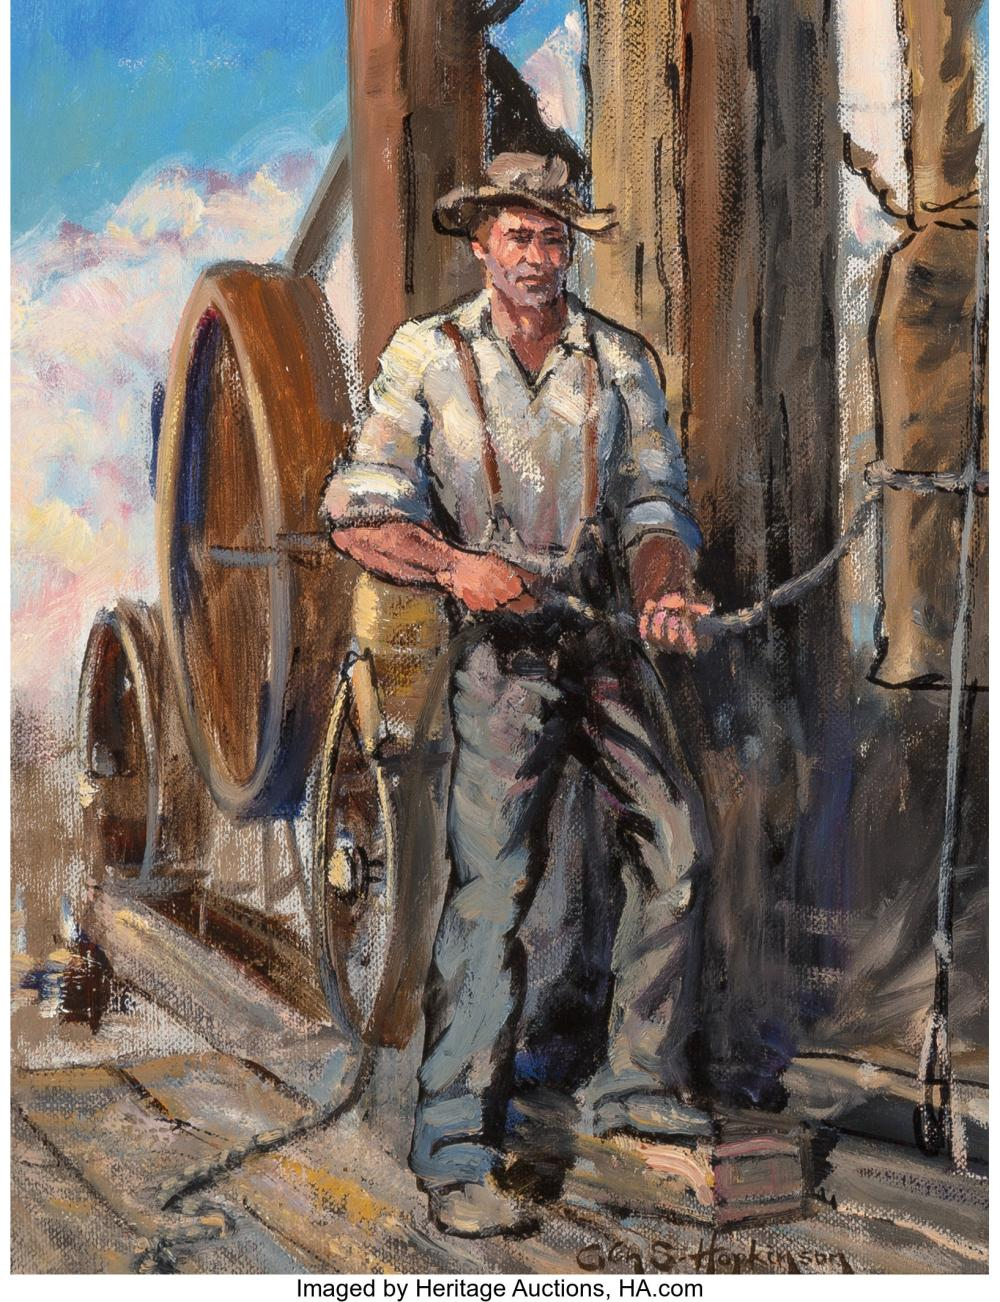 Glen Spencer Hopkinson (American, b. 1946) Vintage Driller Oil on canvas 12-1/2